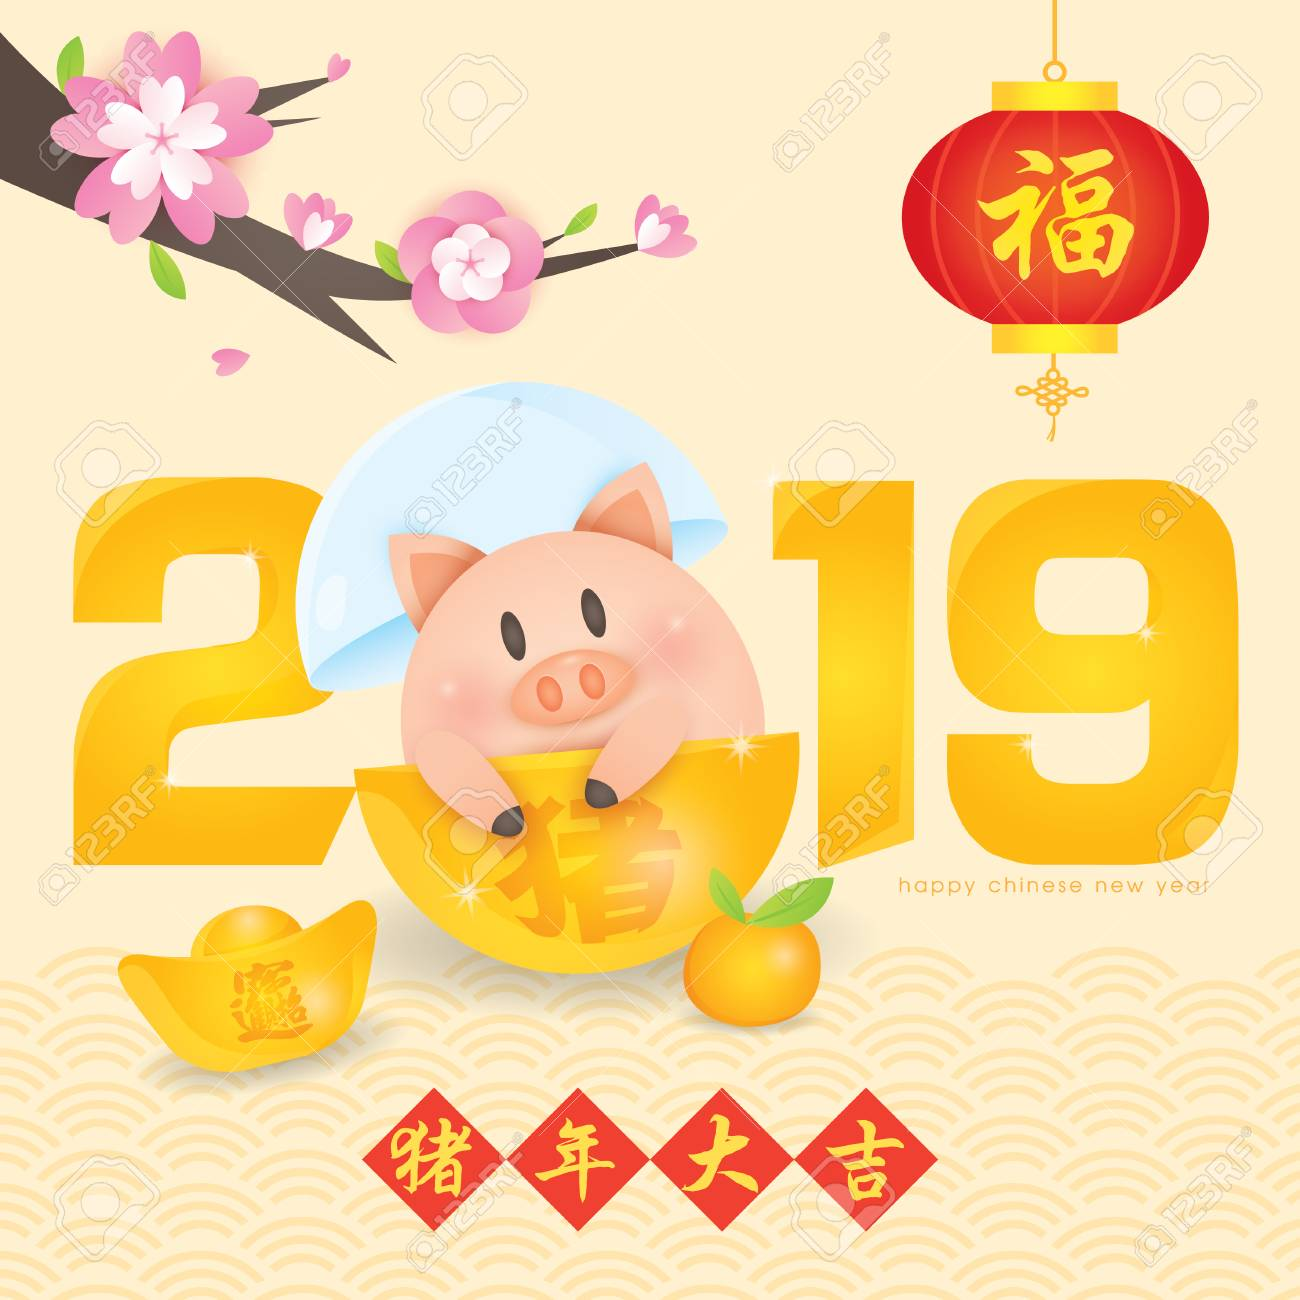 2019 Chinese New Year Year Of Pig Vector With Cute Piggy With Royalty Free Cliparts Vectors And Stock Illustration Image 112125690